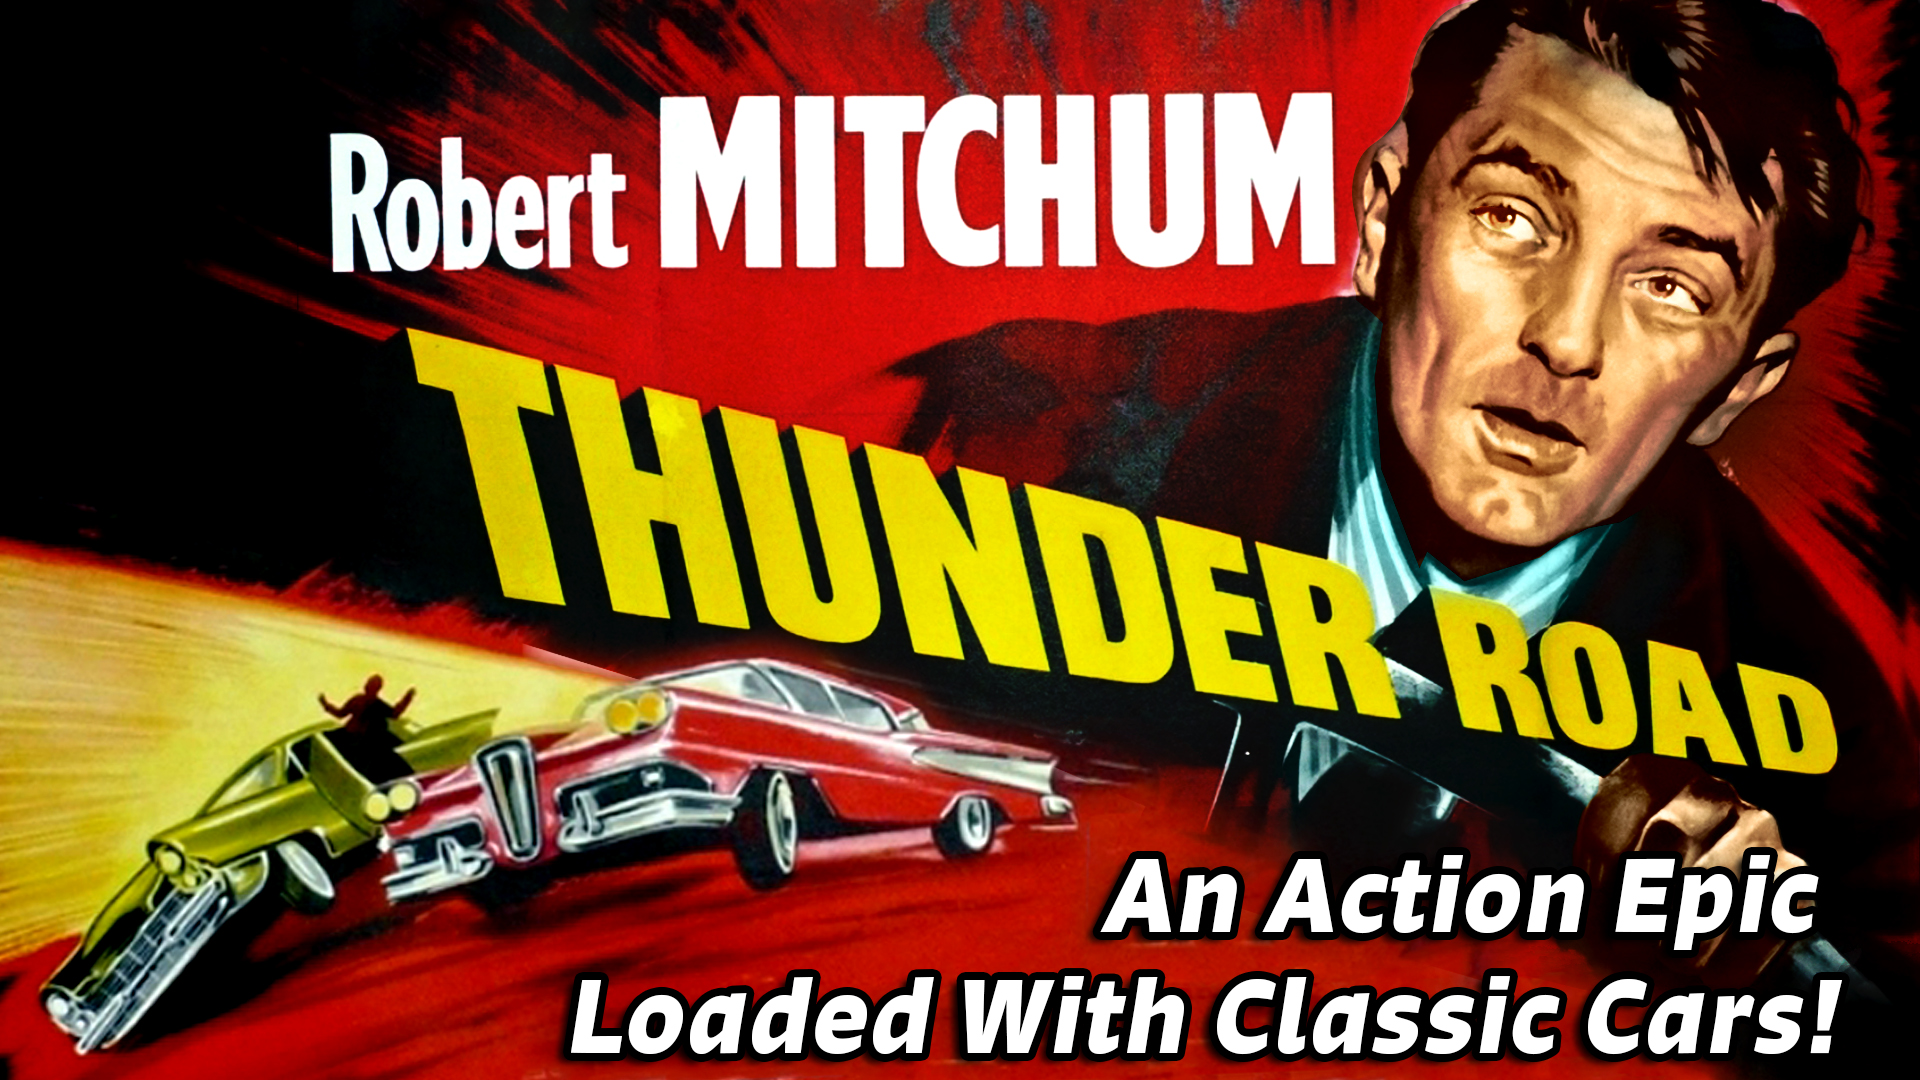 """Robert Mitchum in """"Thunder Road"""" - An Action Epic Loaded With Classic Cars!"""